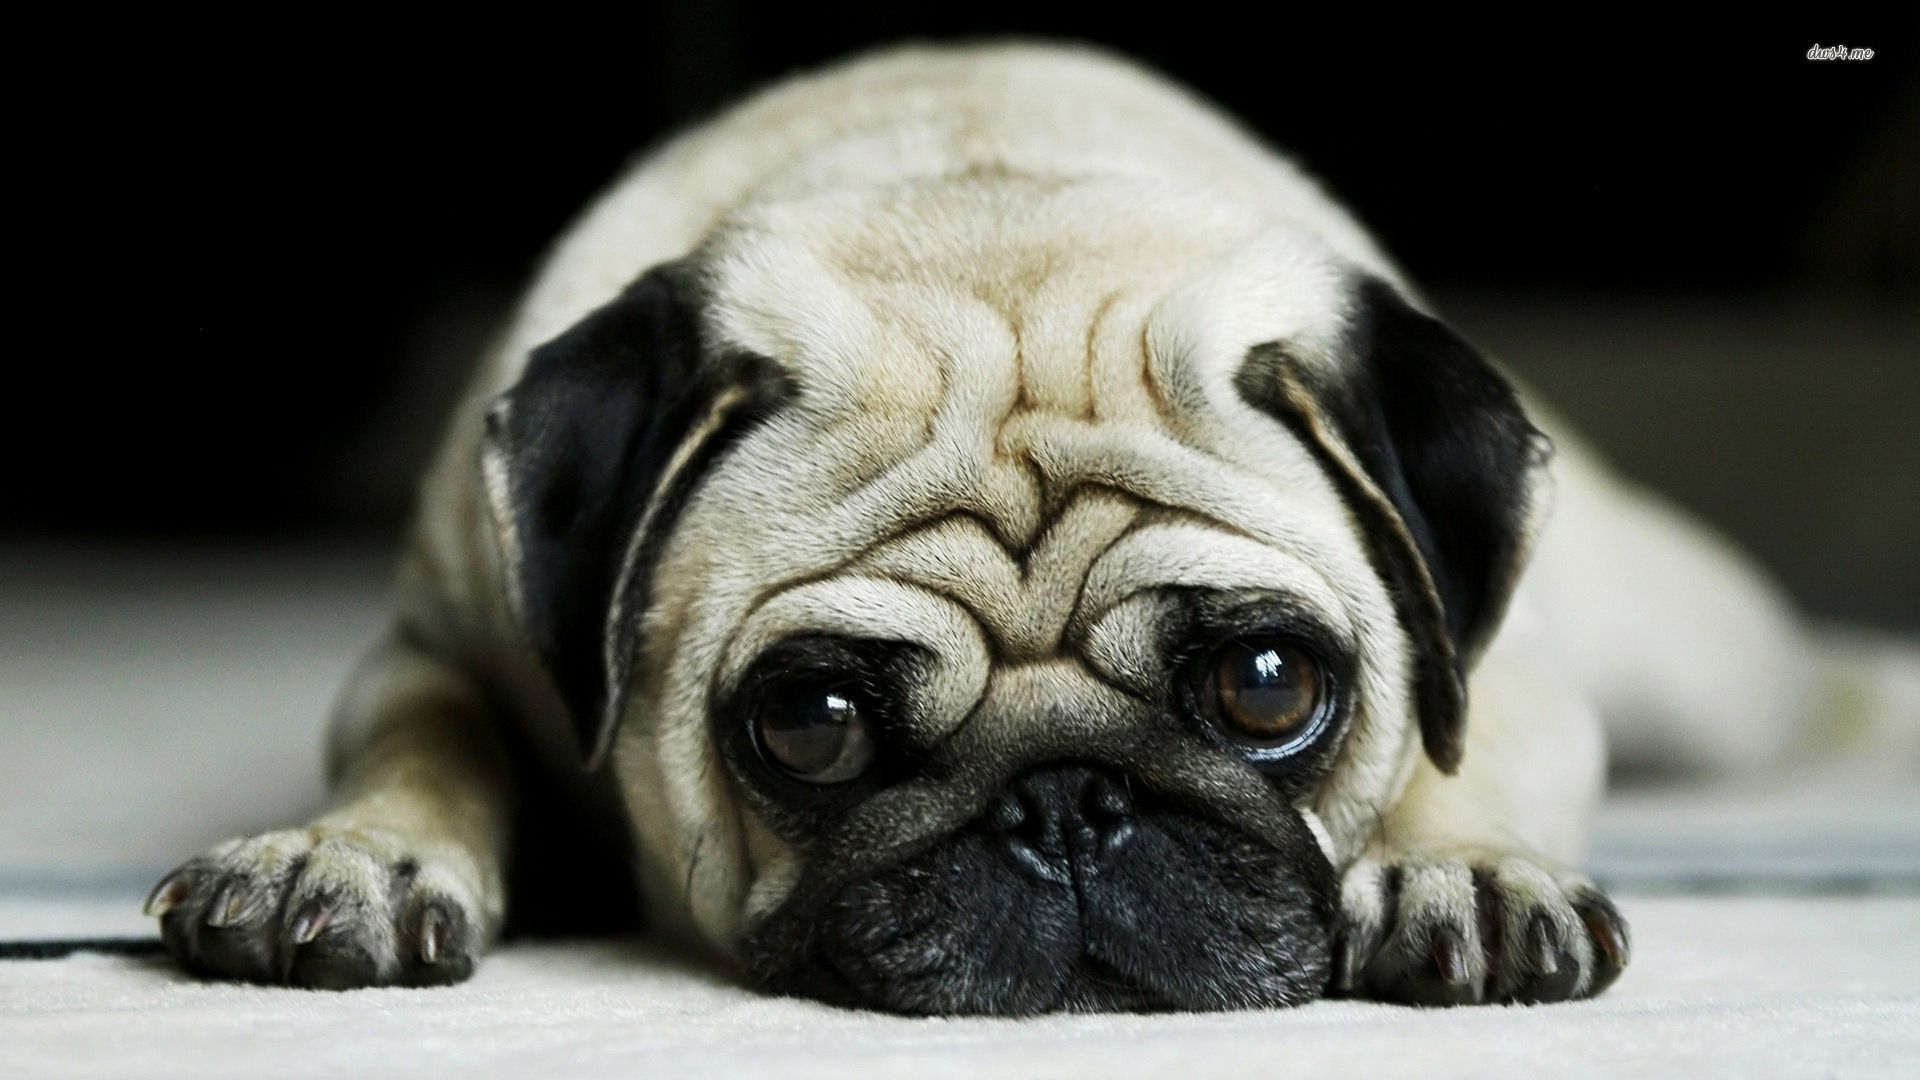 Pug Dog Wallpapers Android Apps on Google Play 1920×1080